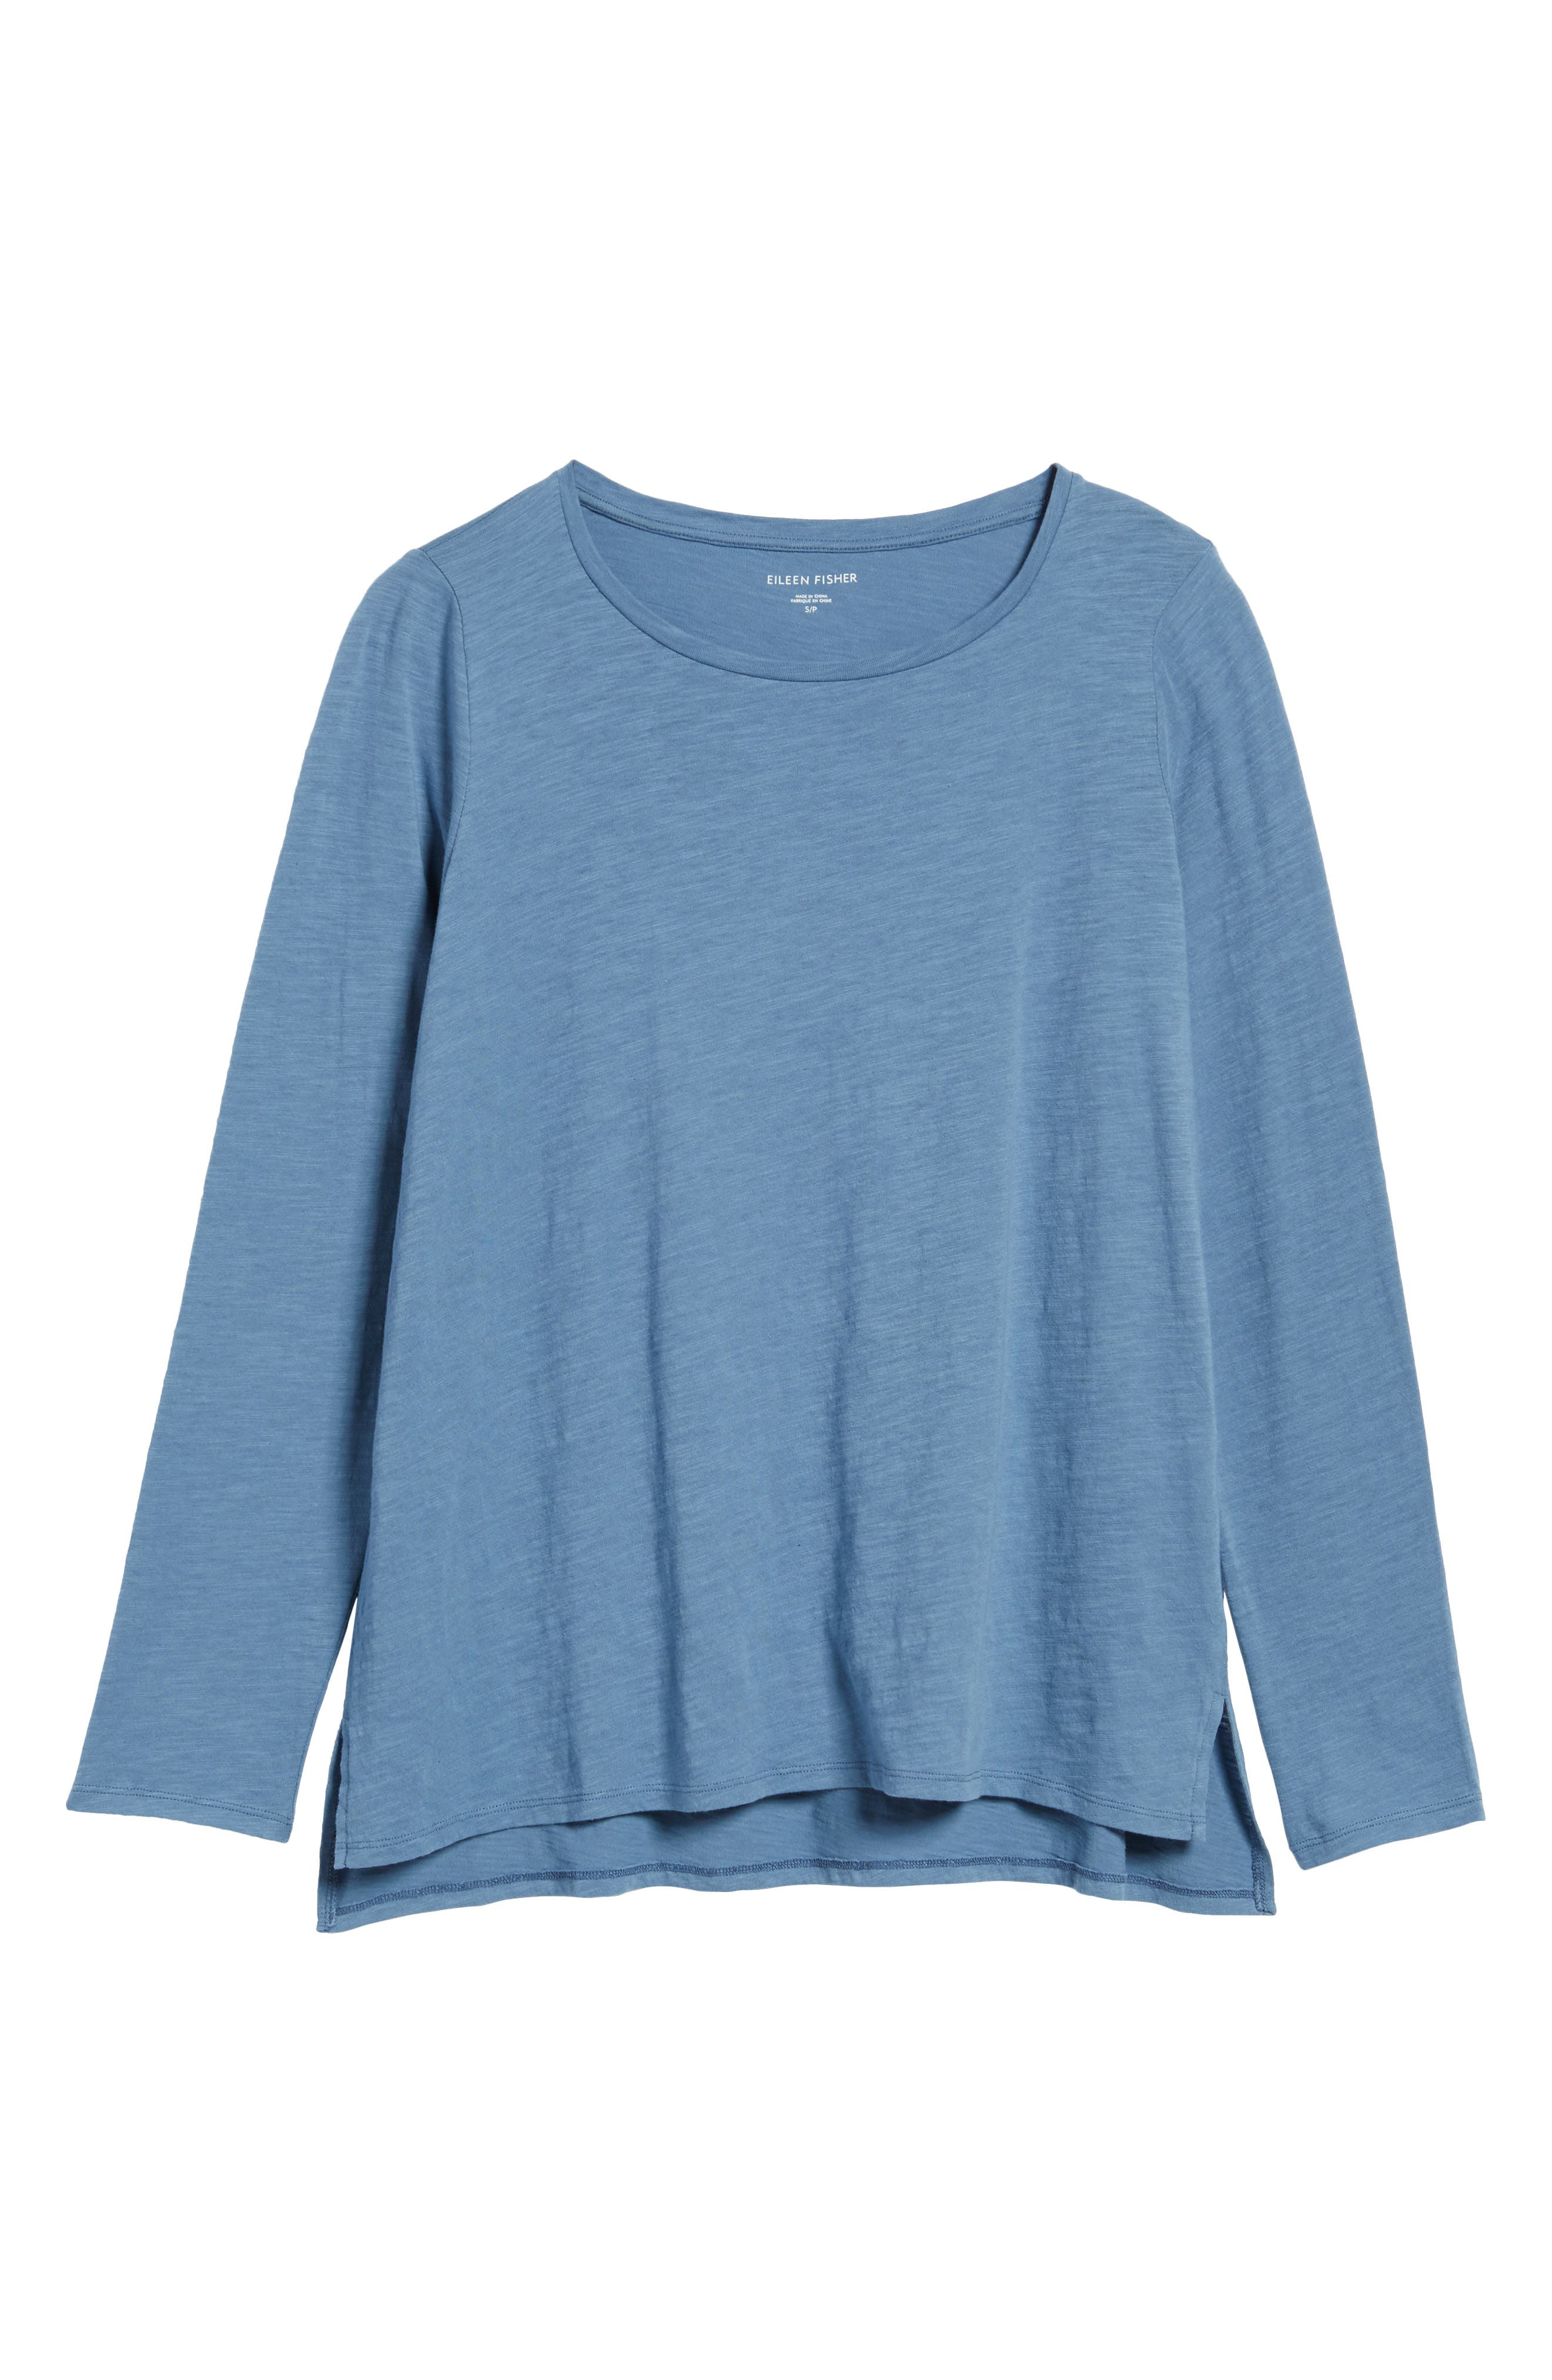 Organic Cotton Tee,                             Alternate thumbnail 23, color,